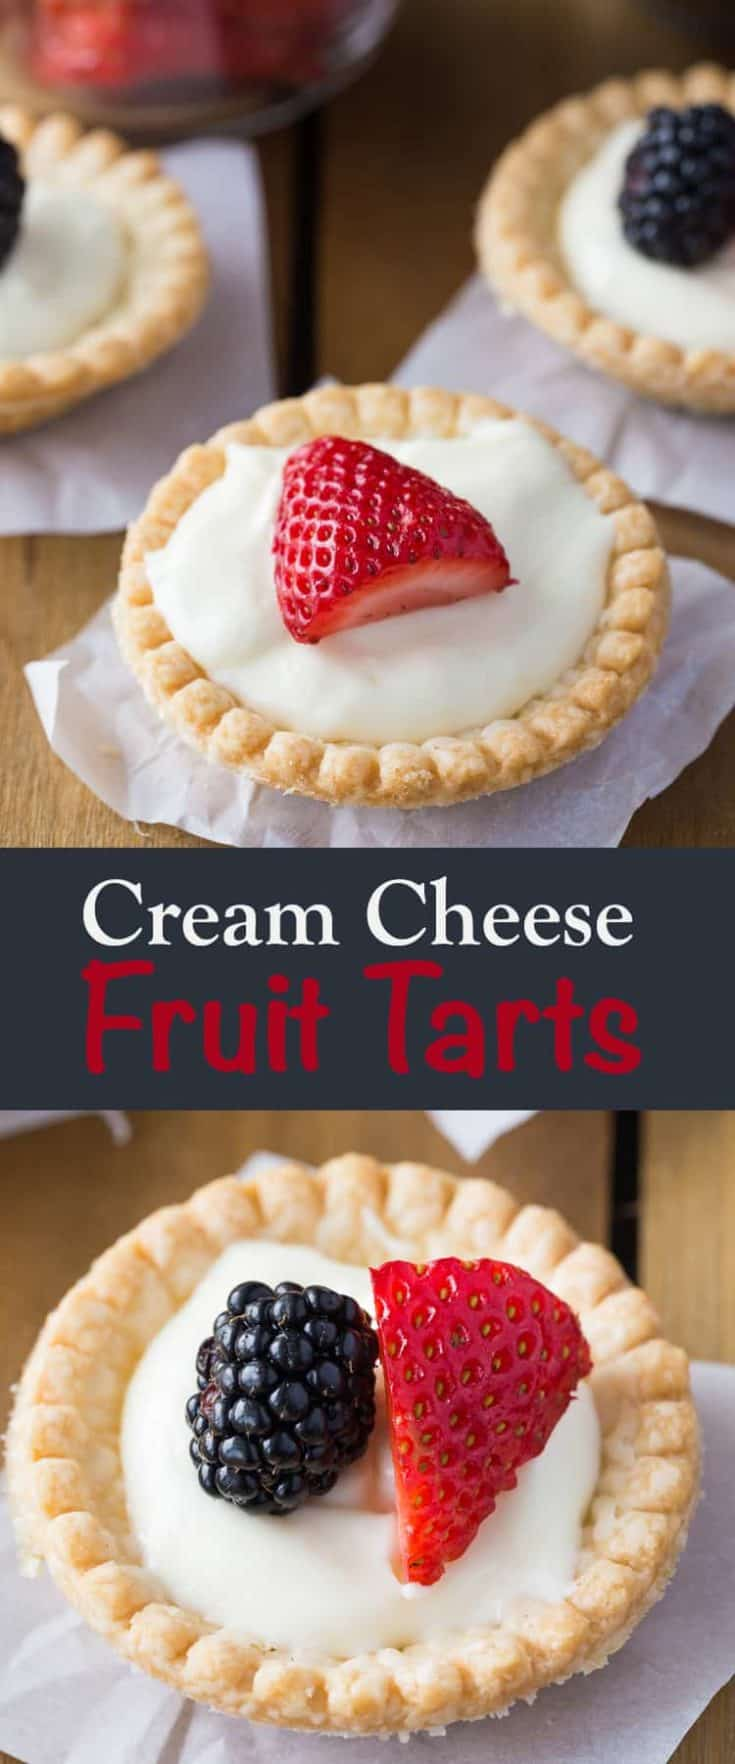 This super simple dessert recipe for CREAM CHEESE FRUIT TARTS is what I'd consider the perfect Summer Dessert. Each shell is filled with a cream cheese pudding and topped with fresh fruit and berries - perfection in every bite! Great for potlucks and entertaining. #tarts #summertarts #creamcheesetarts #dessertrecipe #easydessert #summerdessert